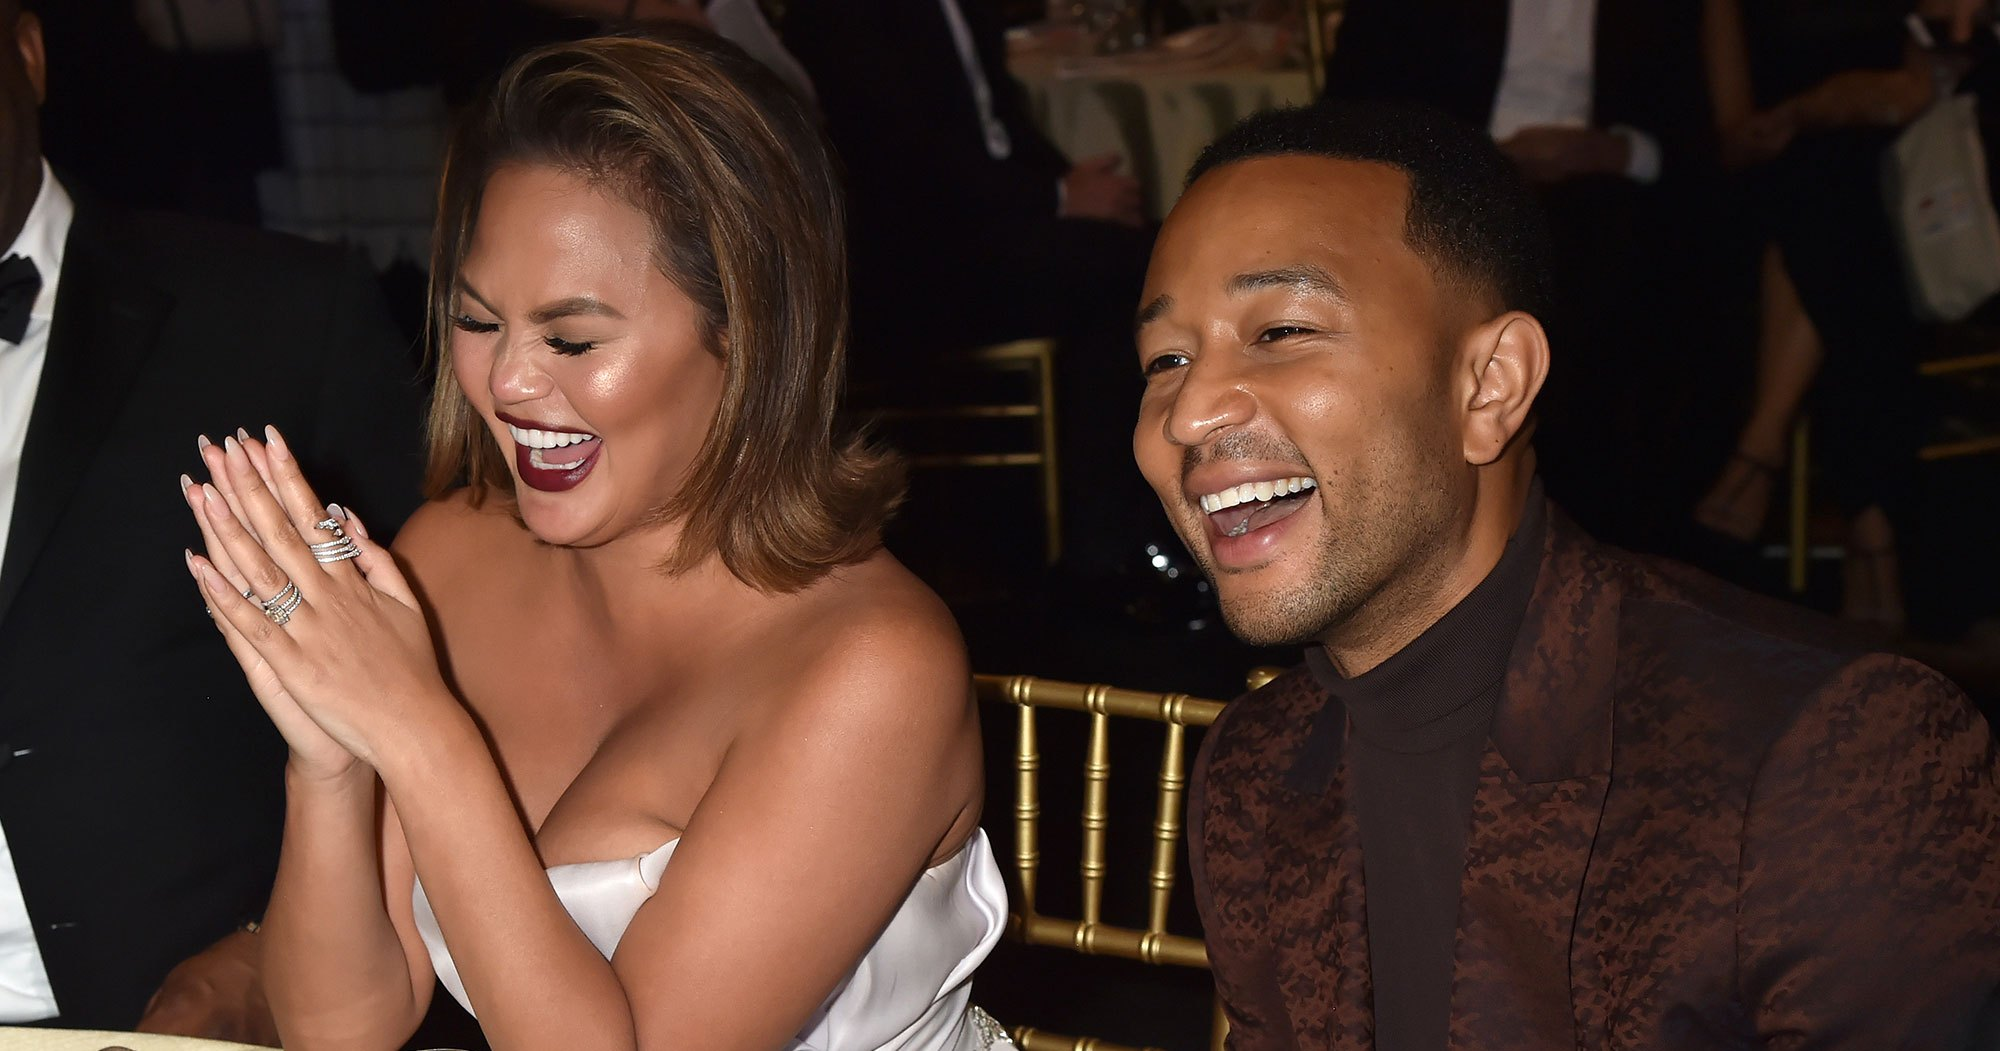 Chrissy Teigen Jokes That She Cheated on Husband John Legend With a Look-Alike